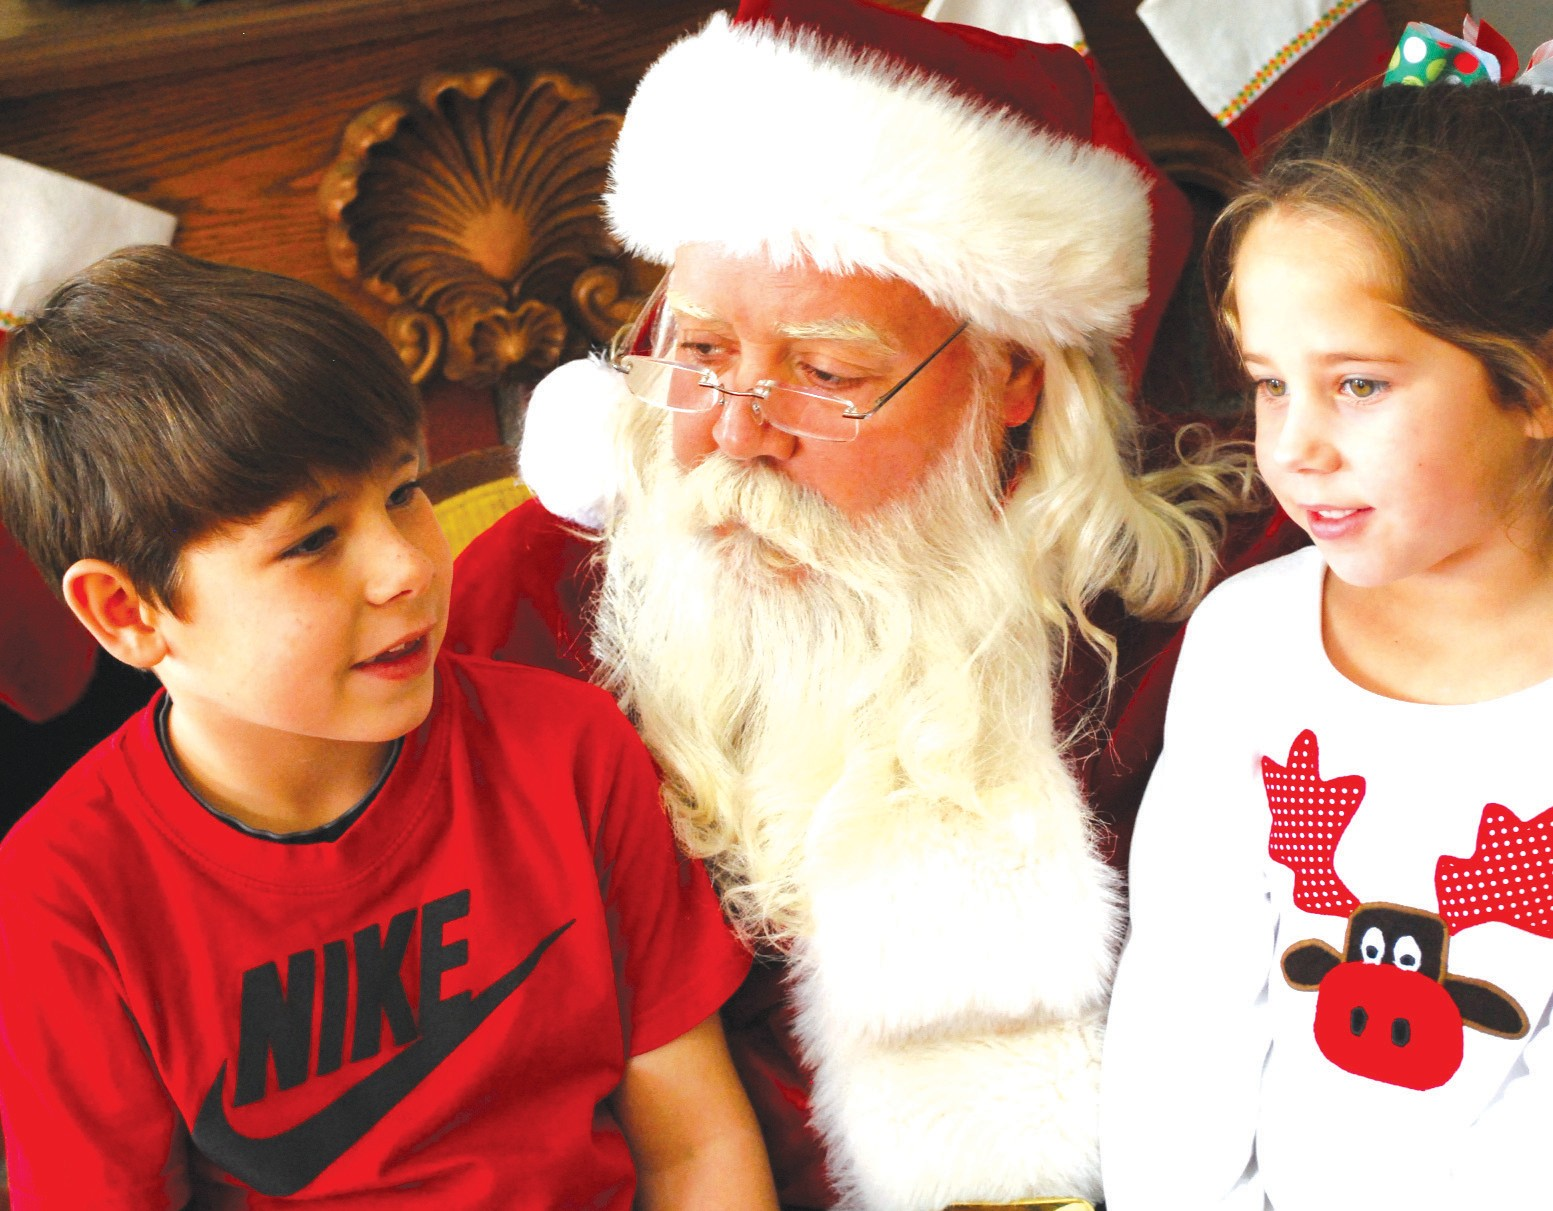 Landon and Madison Gargus, children of Eric and Kristen Gargus, got to meet and talk with Santa Claus last year. Santa will be back again when he comes to downSee town Oneonta on Dec. 7 and 8.